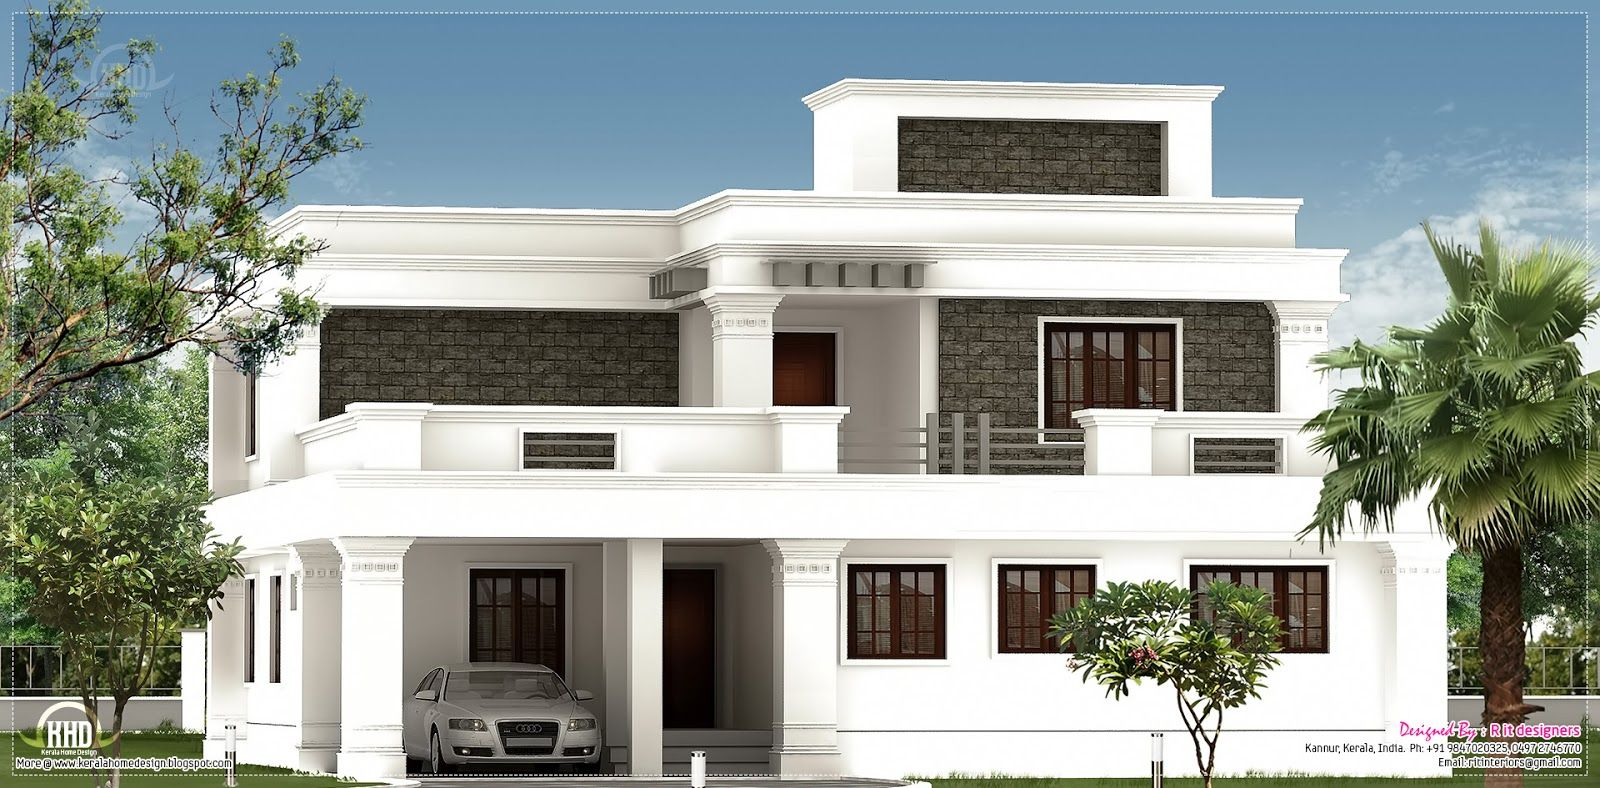 Flat roof homes designs flat roof villa exterior in 2400 for Model house photos in indian